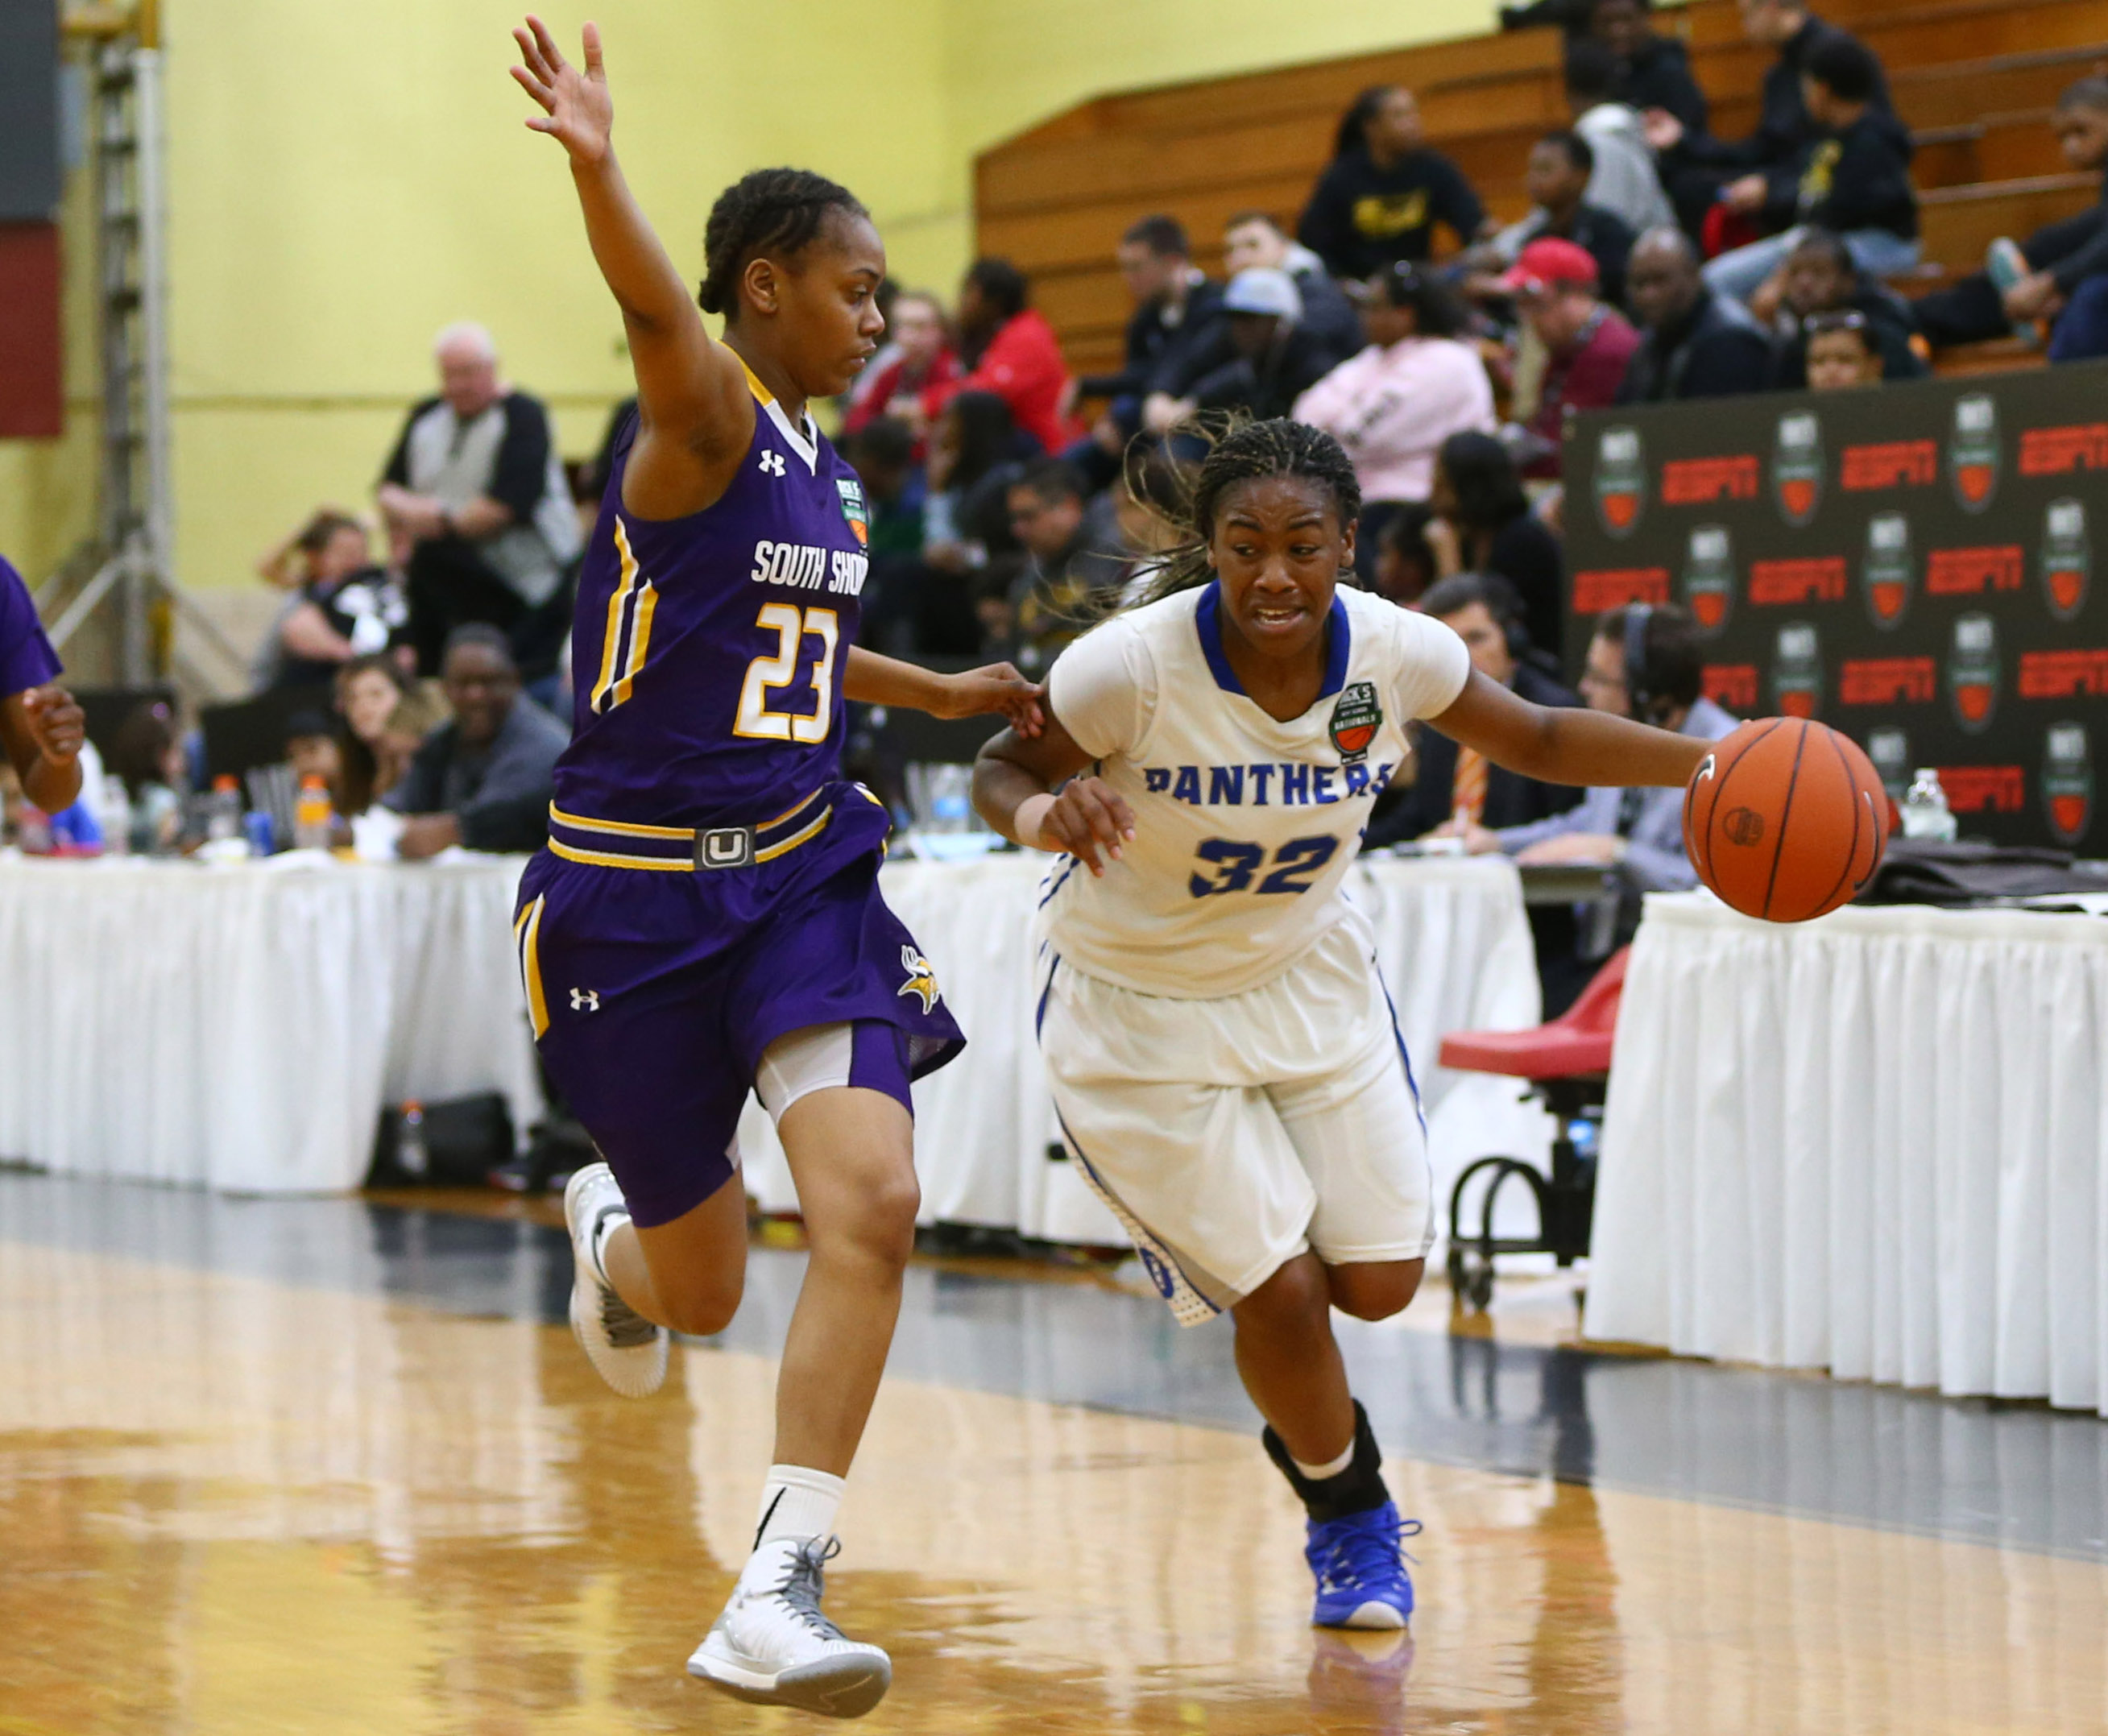 Dillard High School guard Courtney Parson (32) plays the ball while being defended by South Shore High School (NY) guard Diamond Shavis (23) during the Dick's Sporting Goods High School Nationals girls semi final game at Christ the King High School. Dillard defeated South Shore 65-44. (Photo: Andy Marlin, USA TODAY Sports)